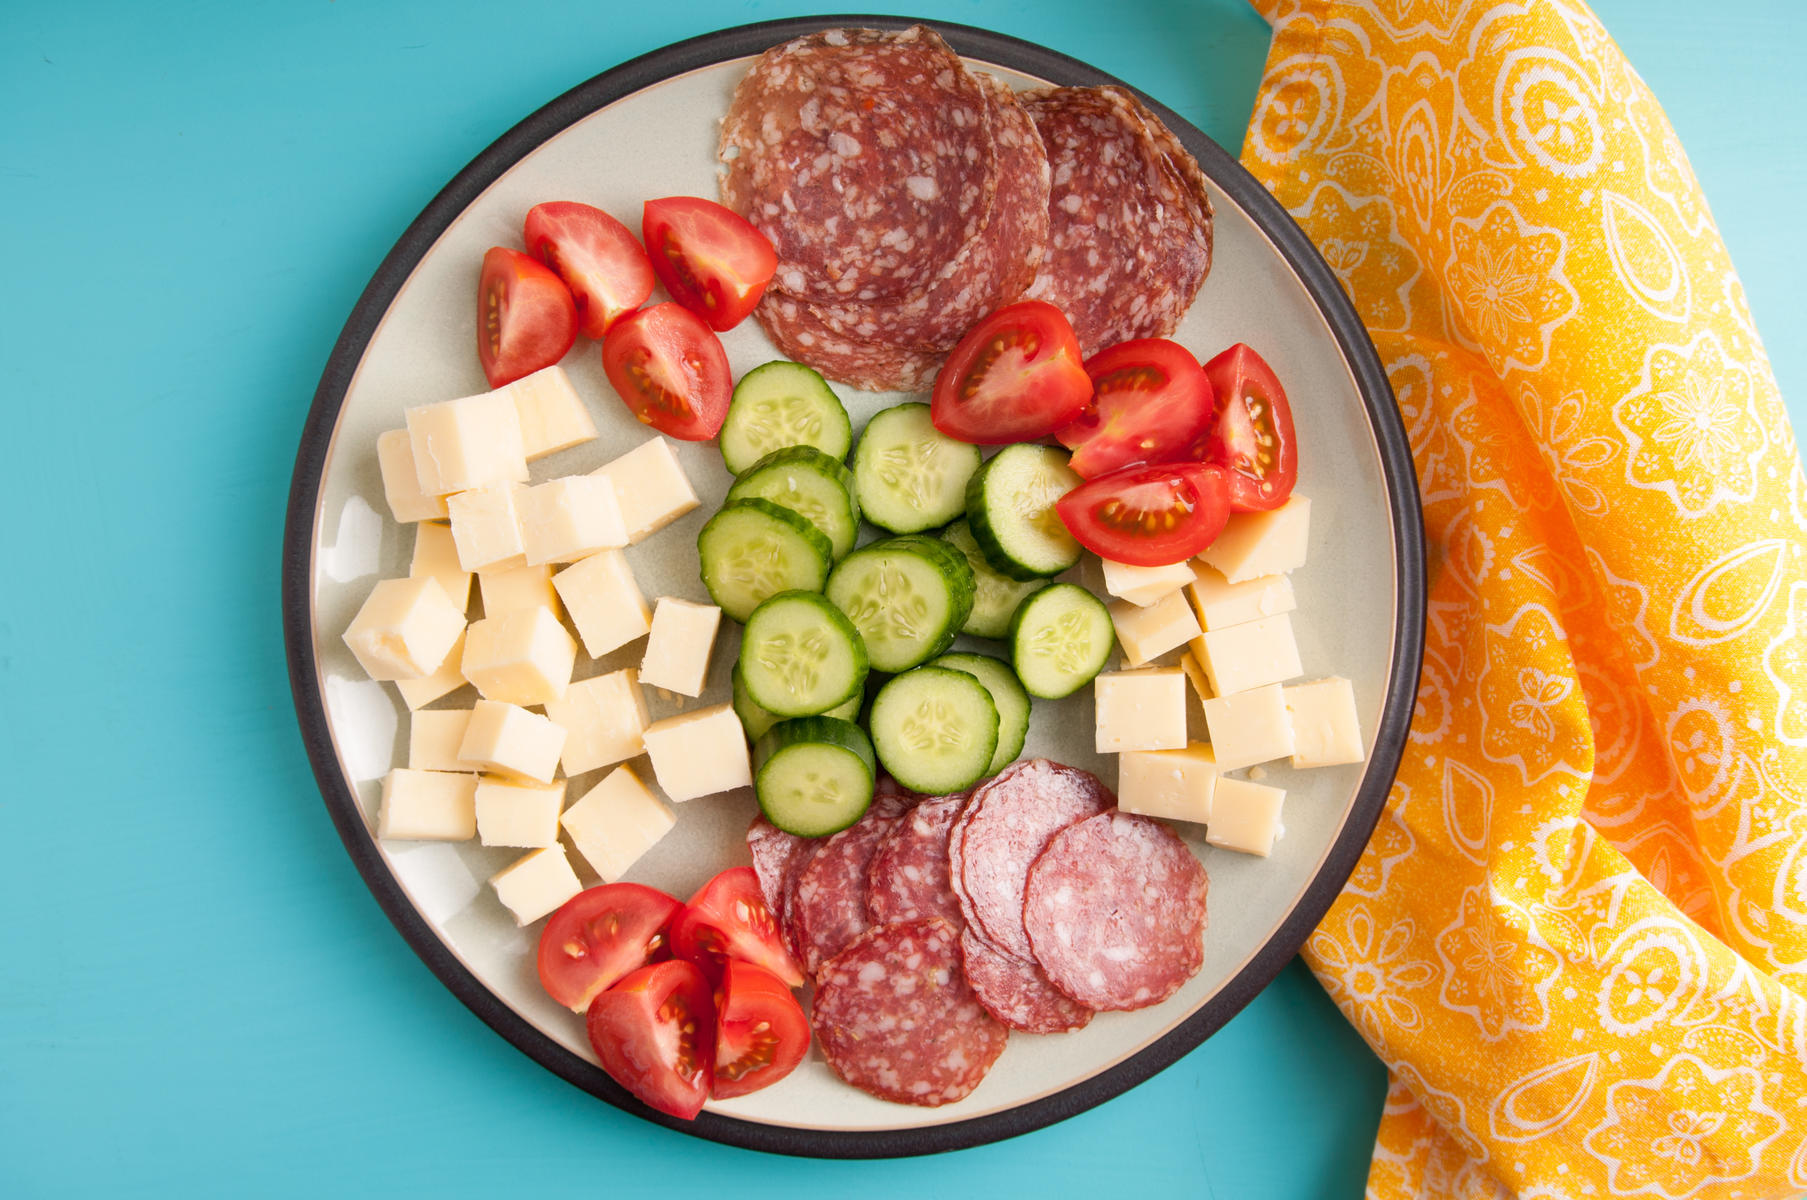 Cheese Meat Vegetable Platter Ketogenic Diet Lunch